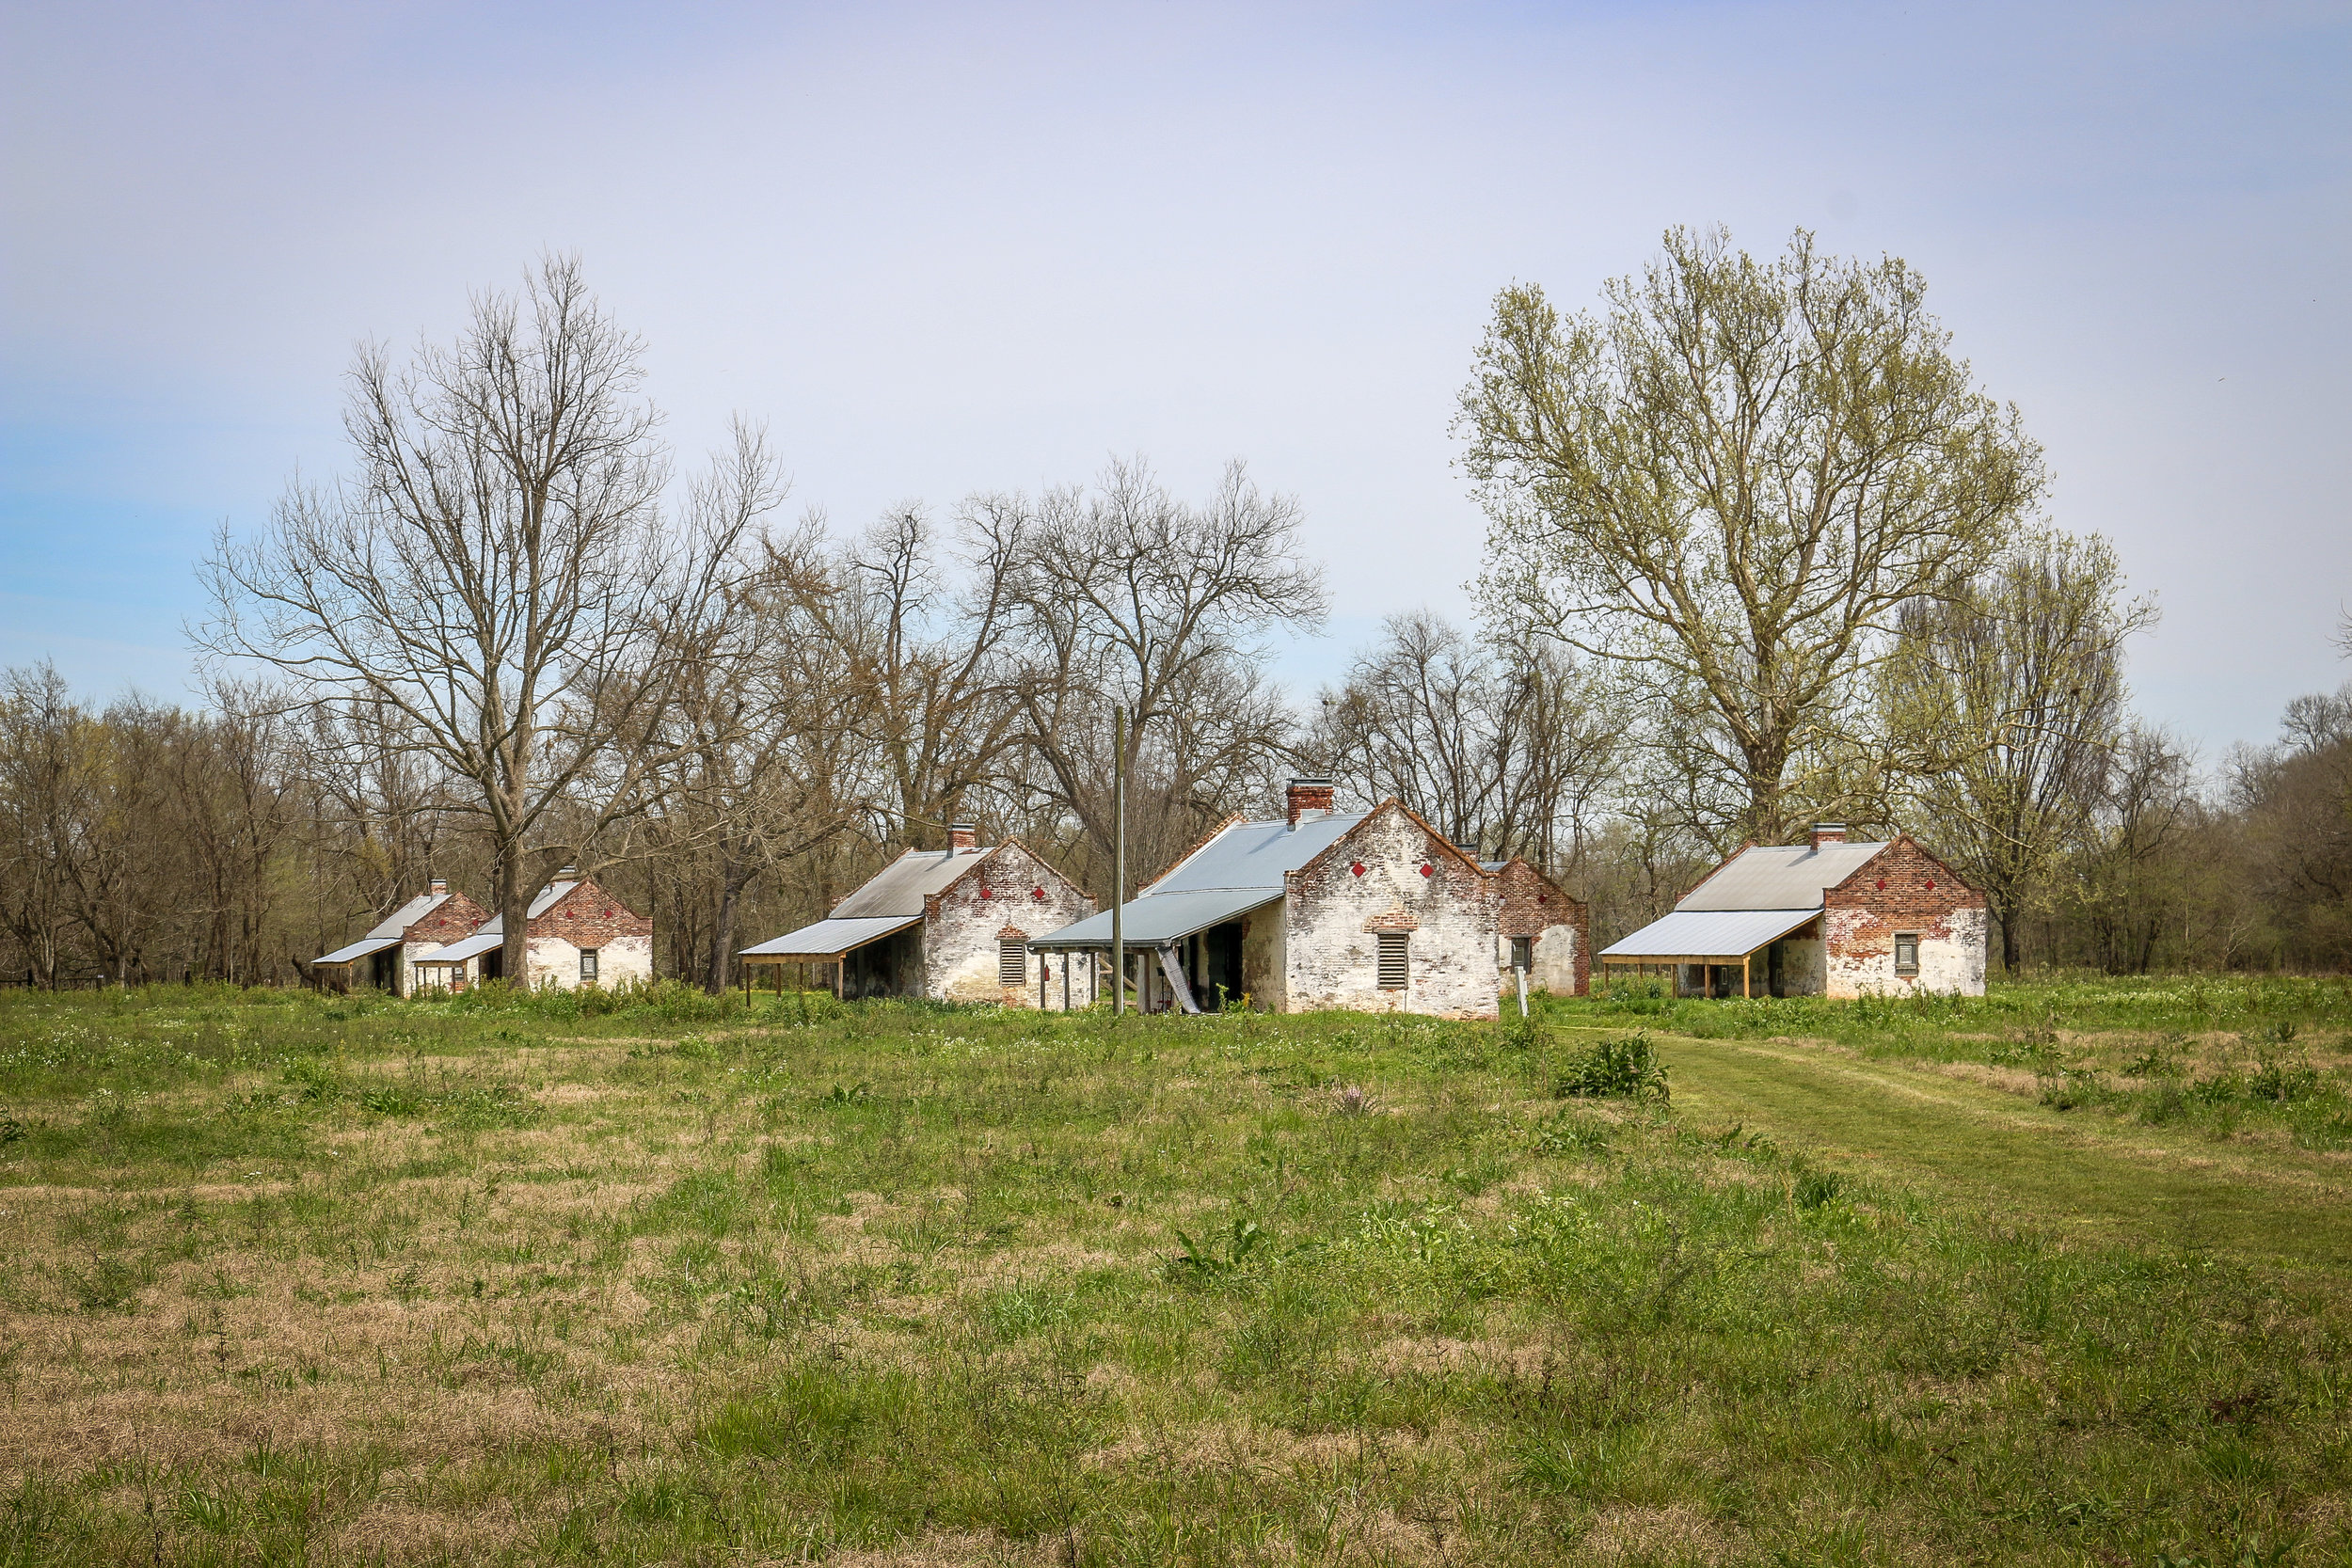 8 of the Original 71 Slave Cabins on Magnolia Plantation